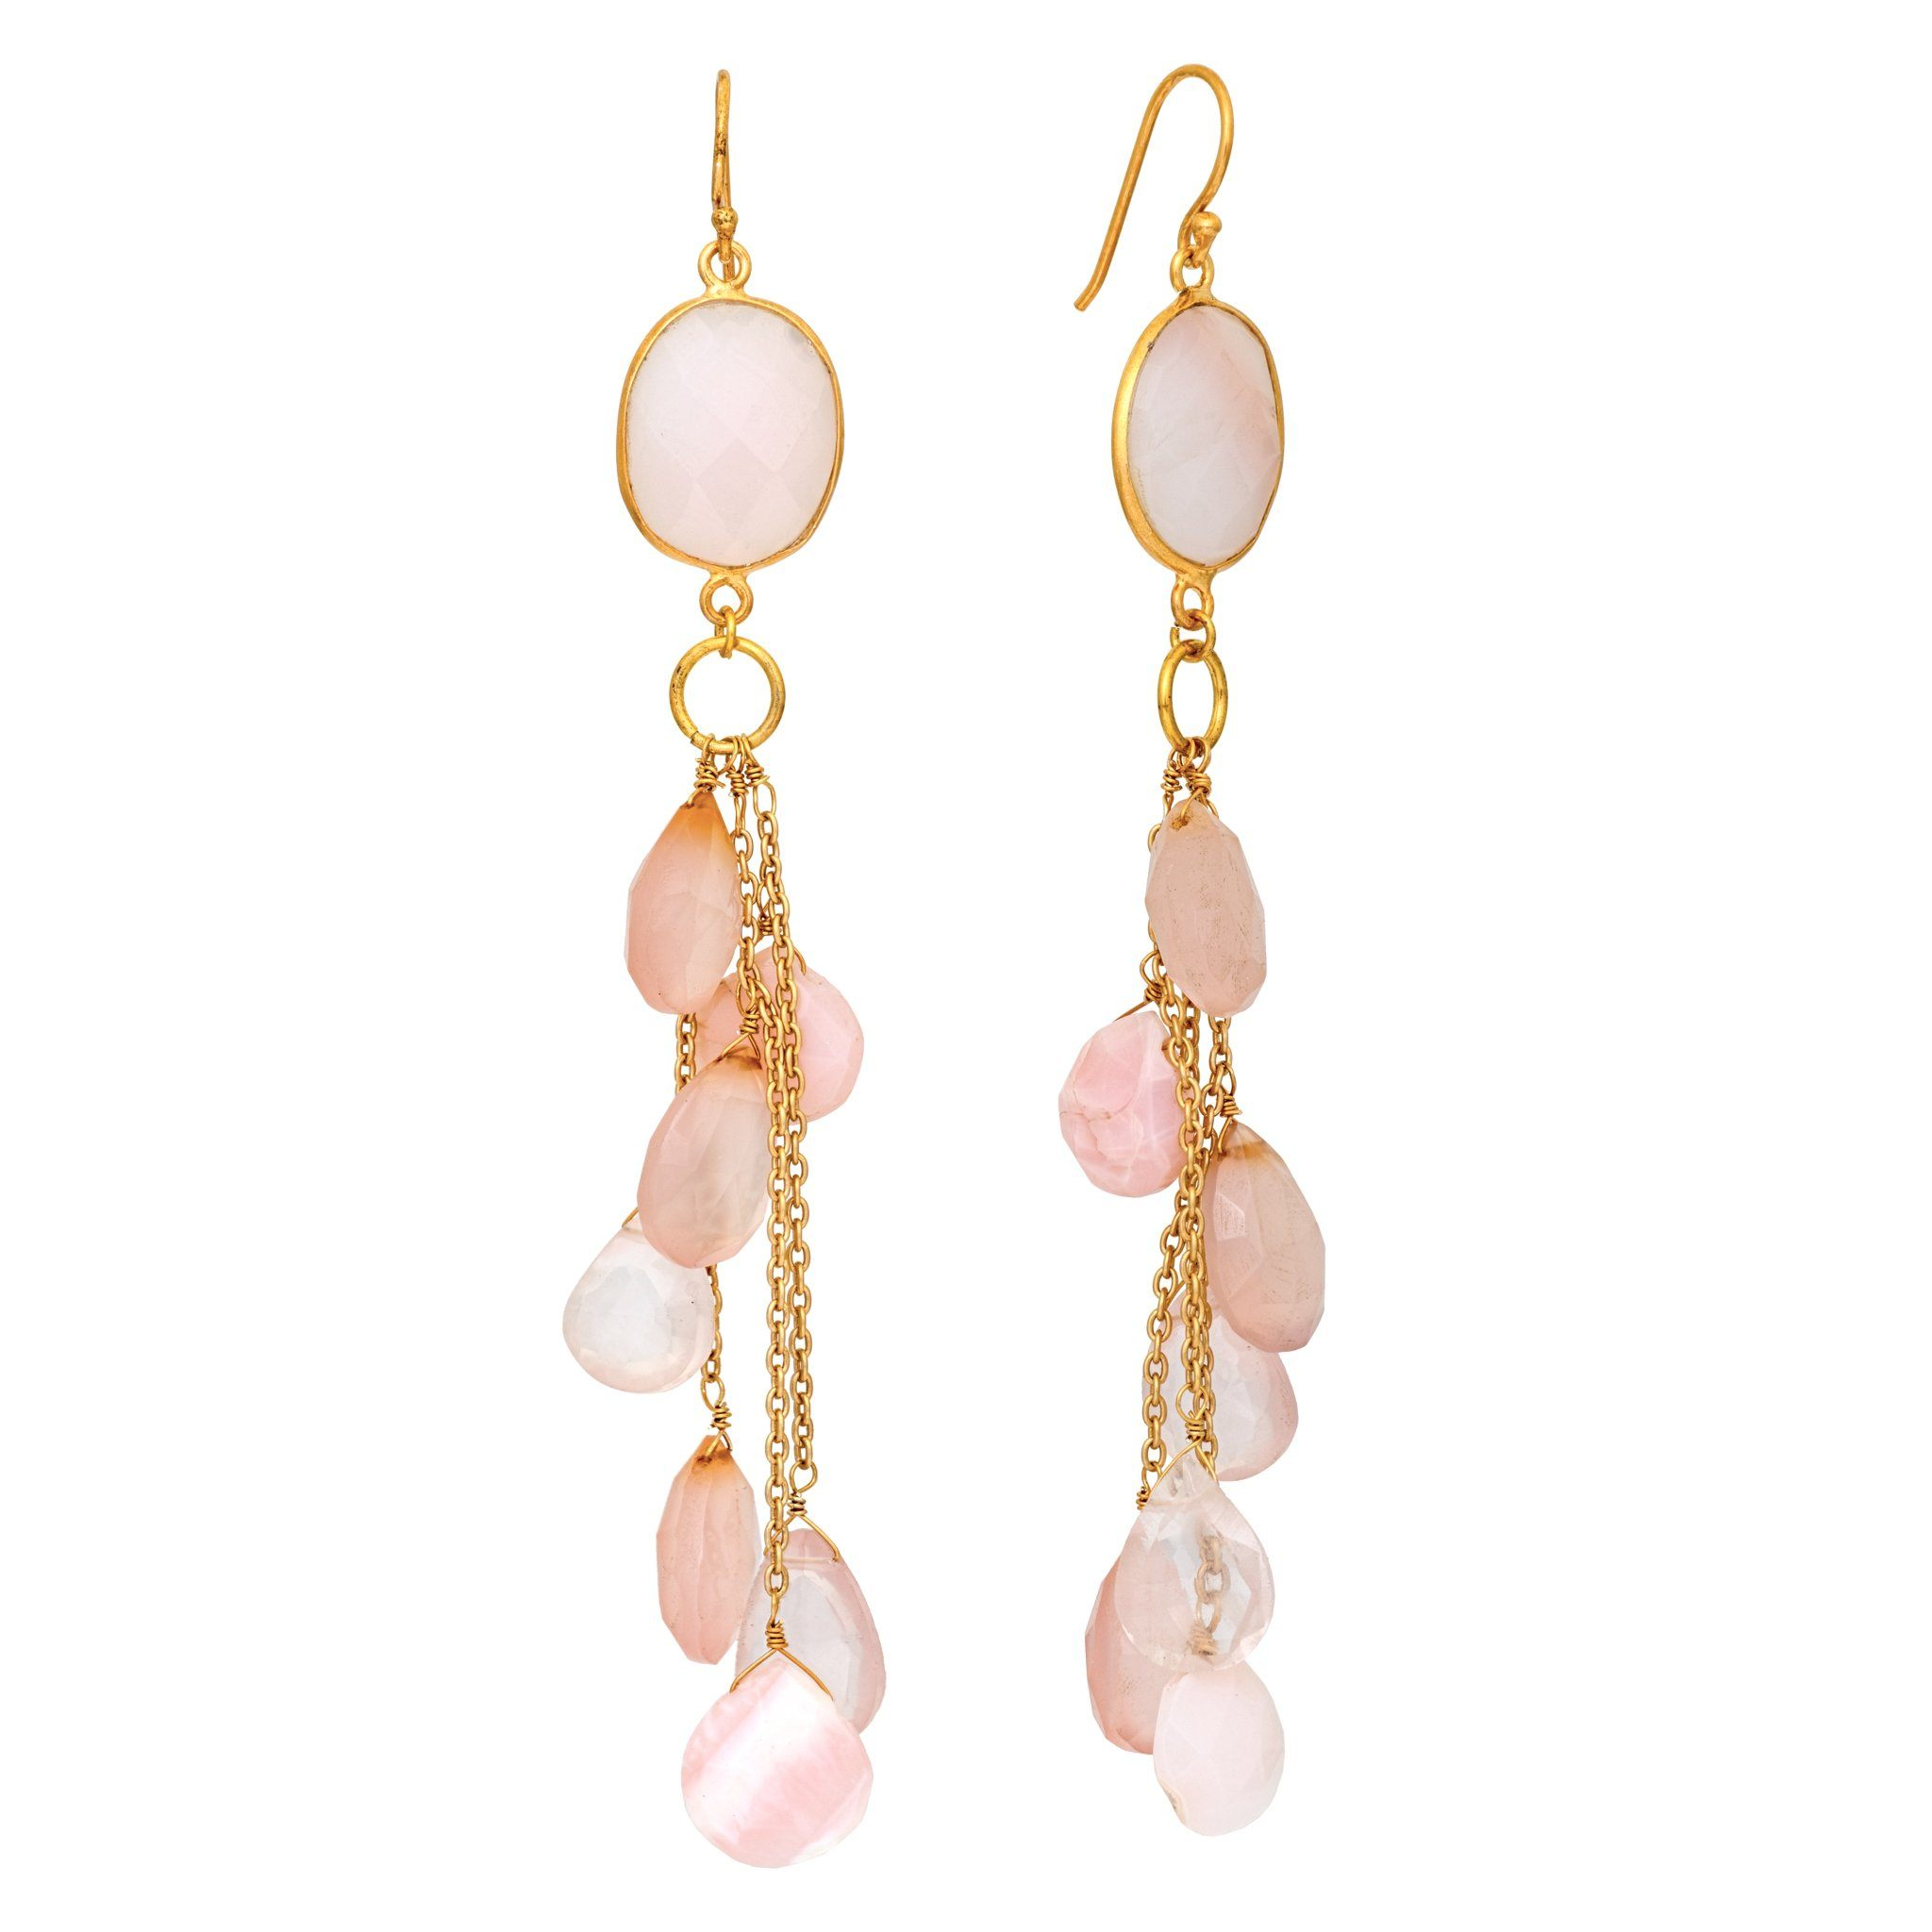 LUZ rose quartz cluster long earrings